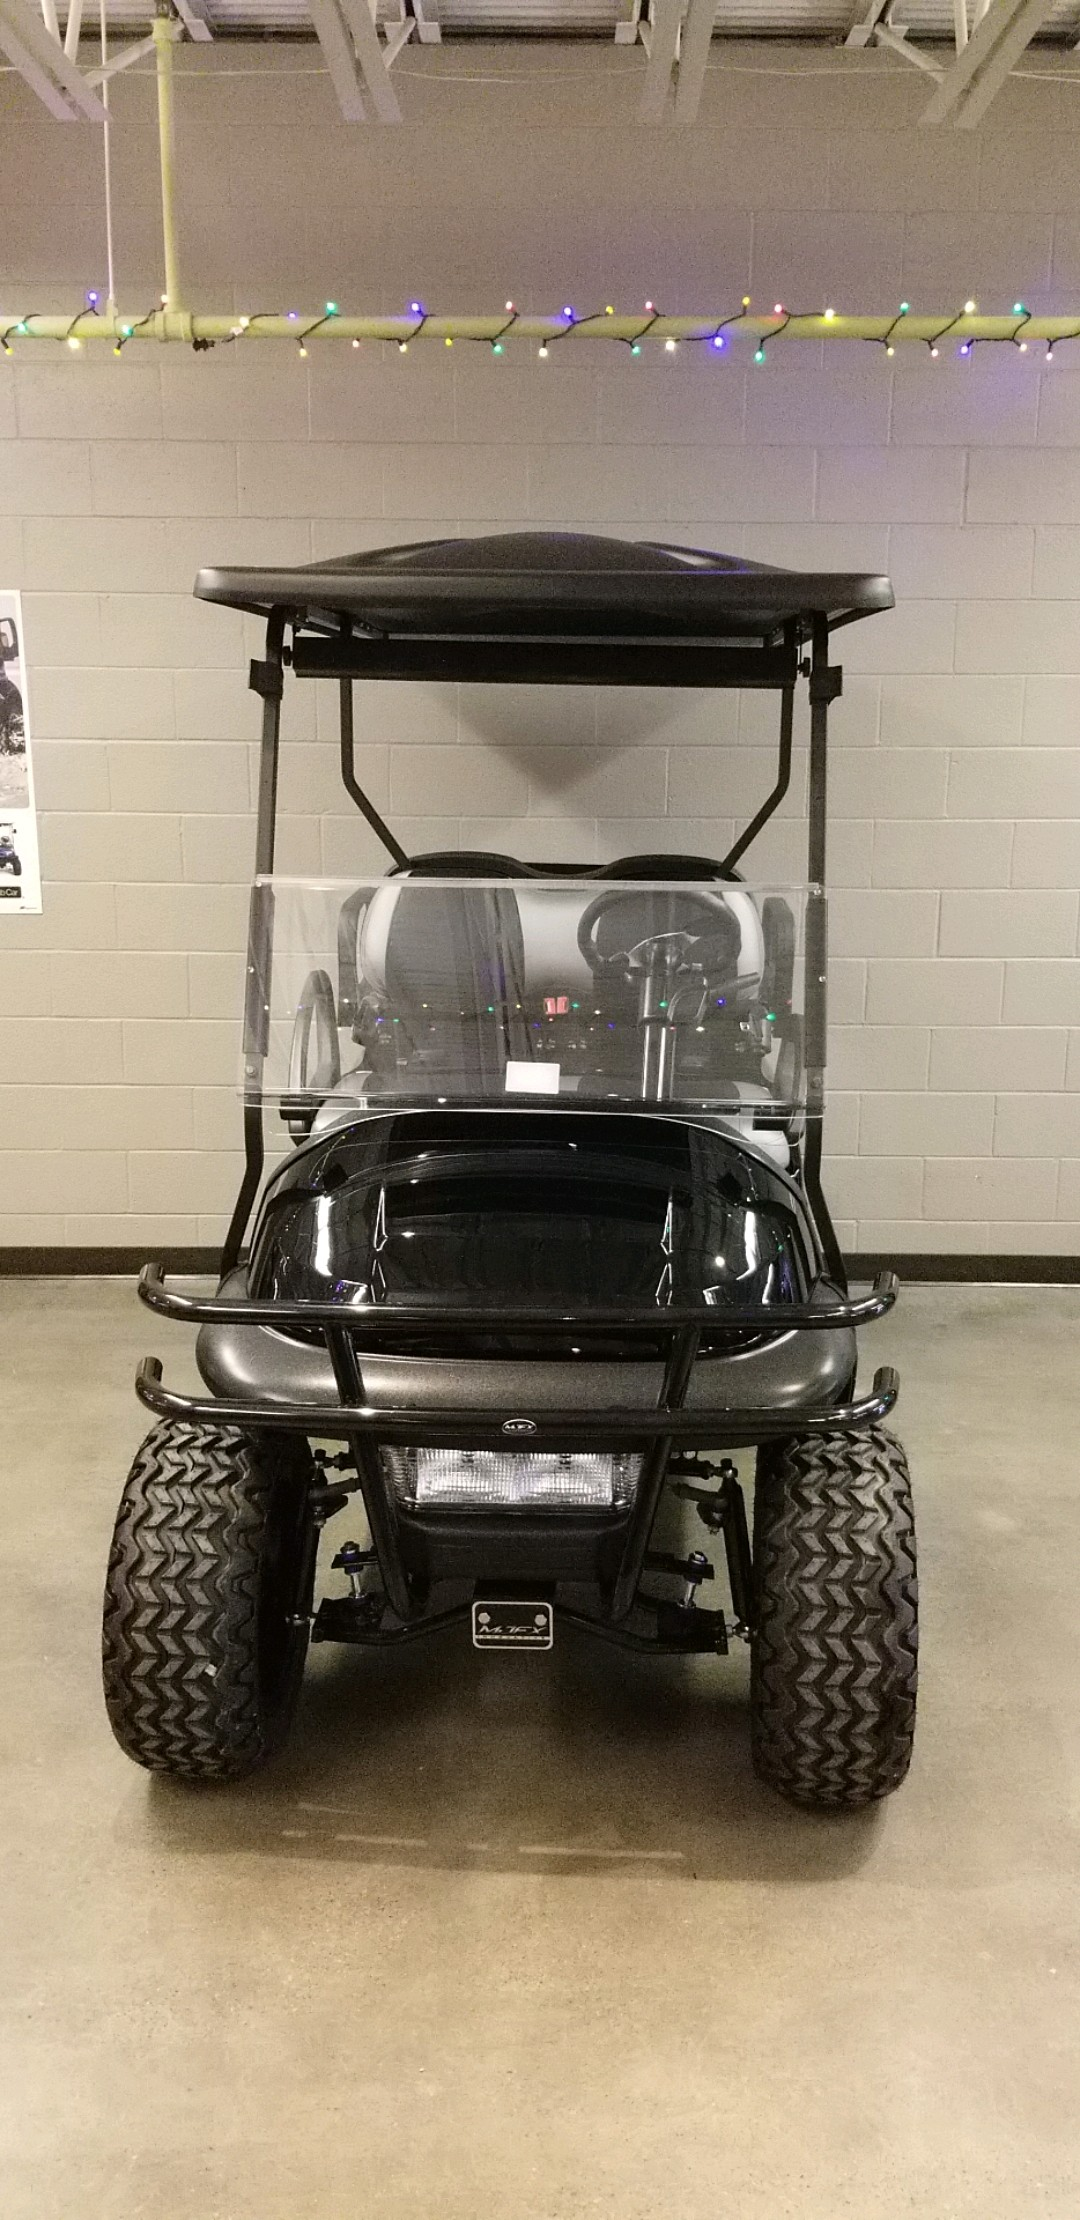 Featured Image for 2012 Club Car Precedent Lifted 4 Passenger Electric